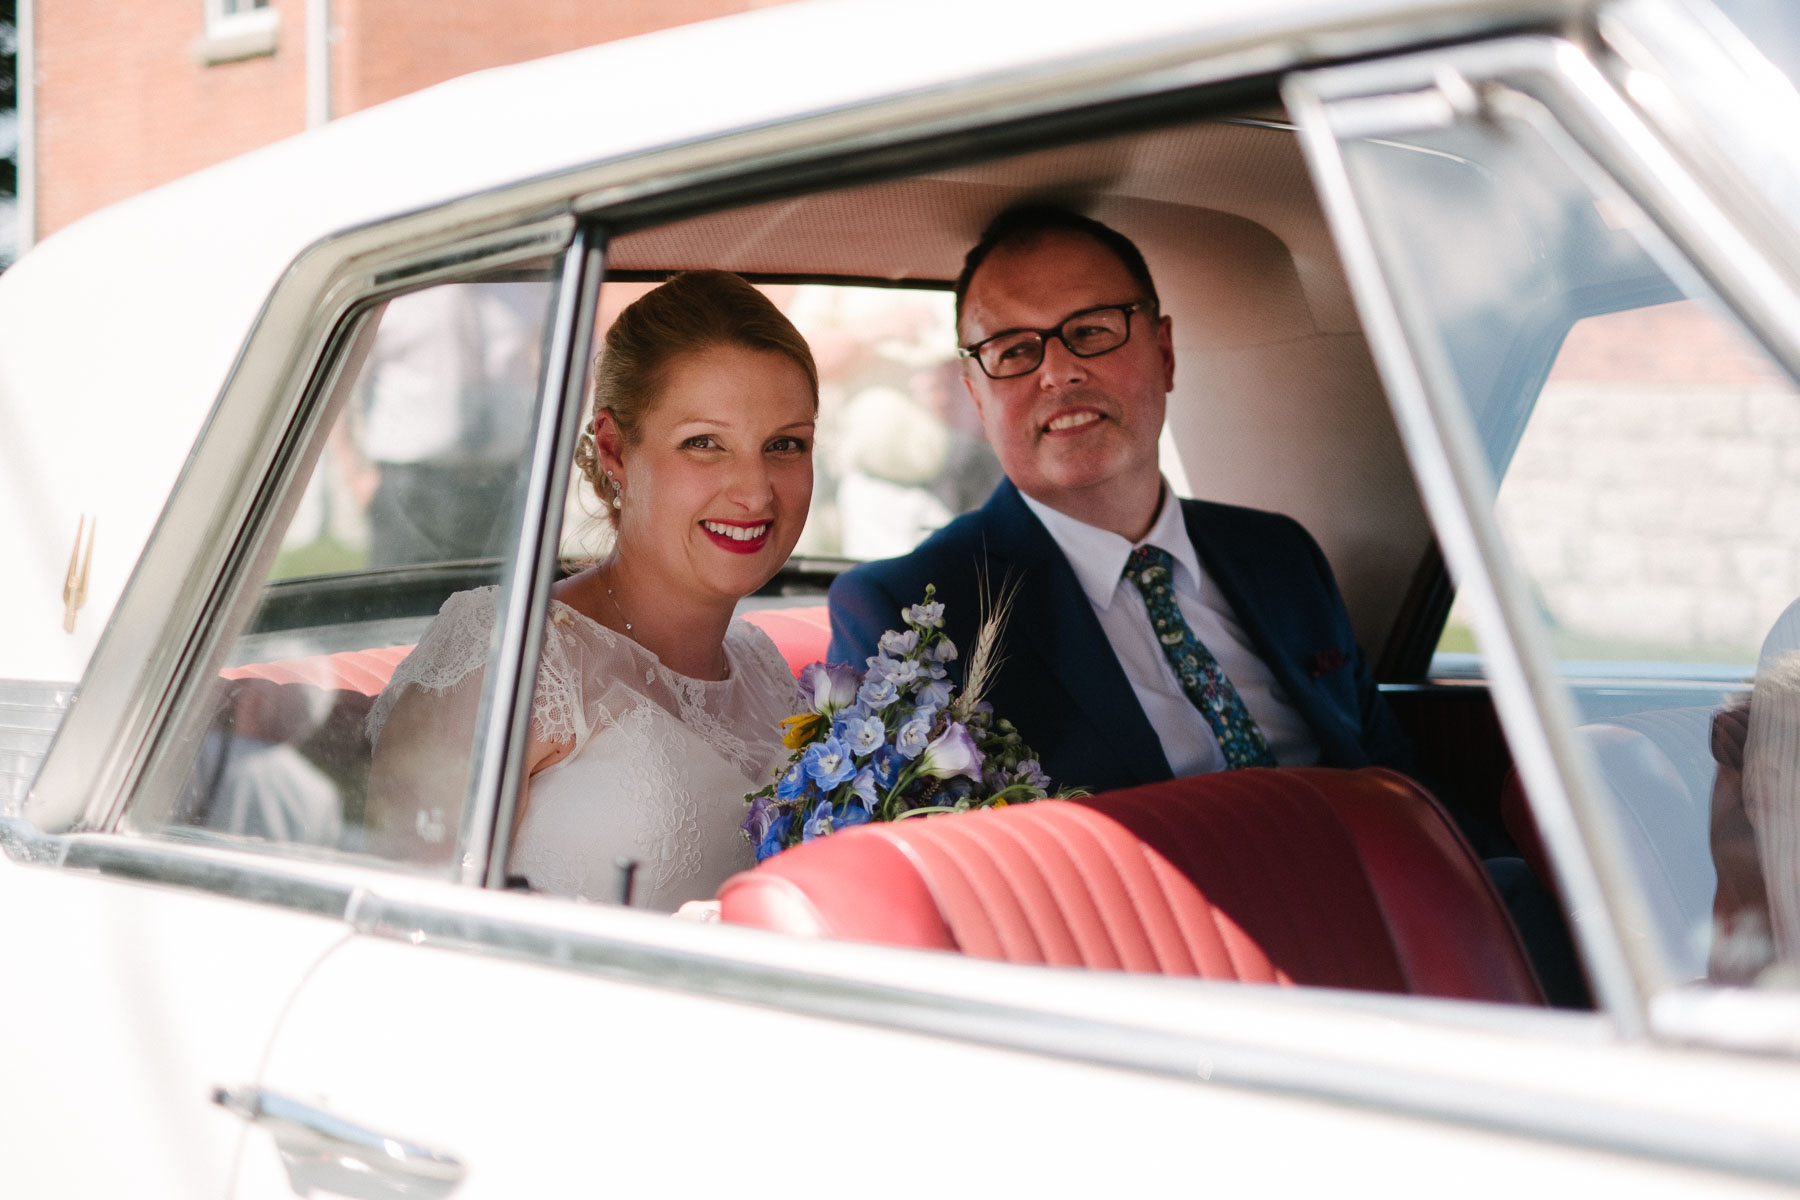 Bride and groom in back seat of a white Studebaker in this rustic family farm wedding.